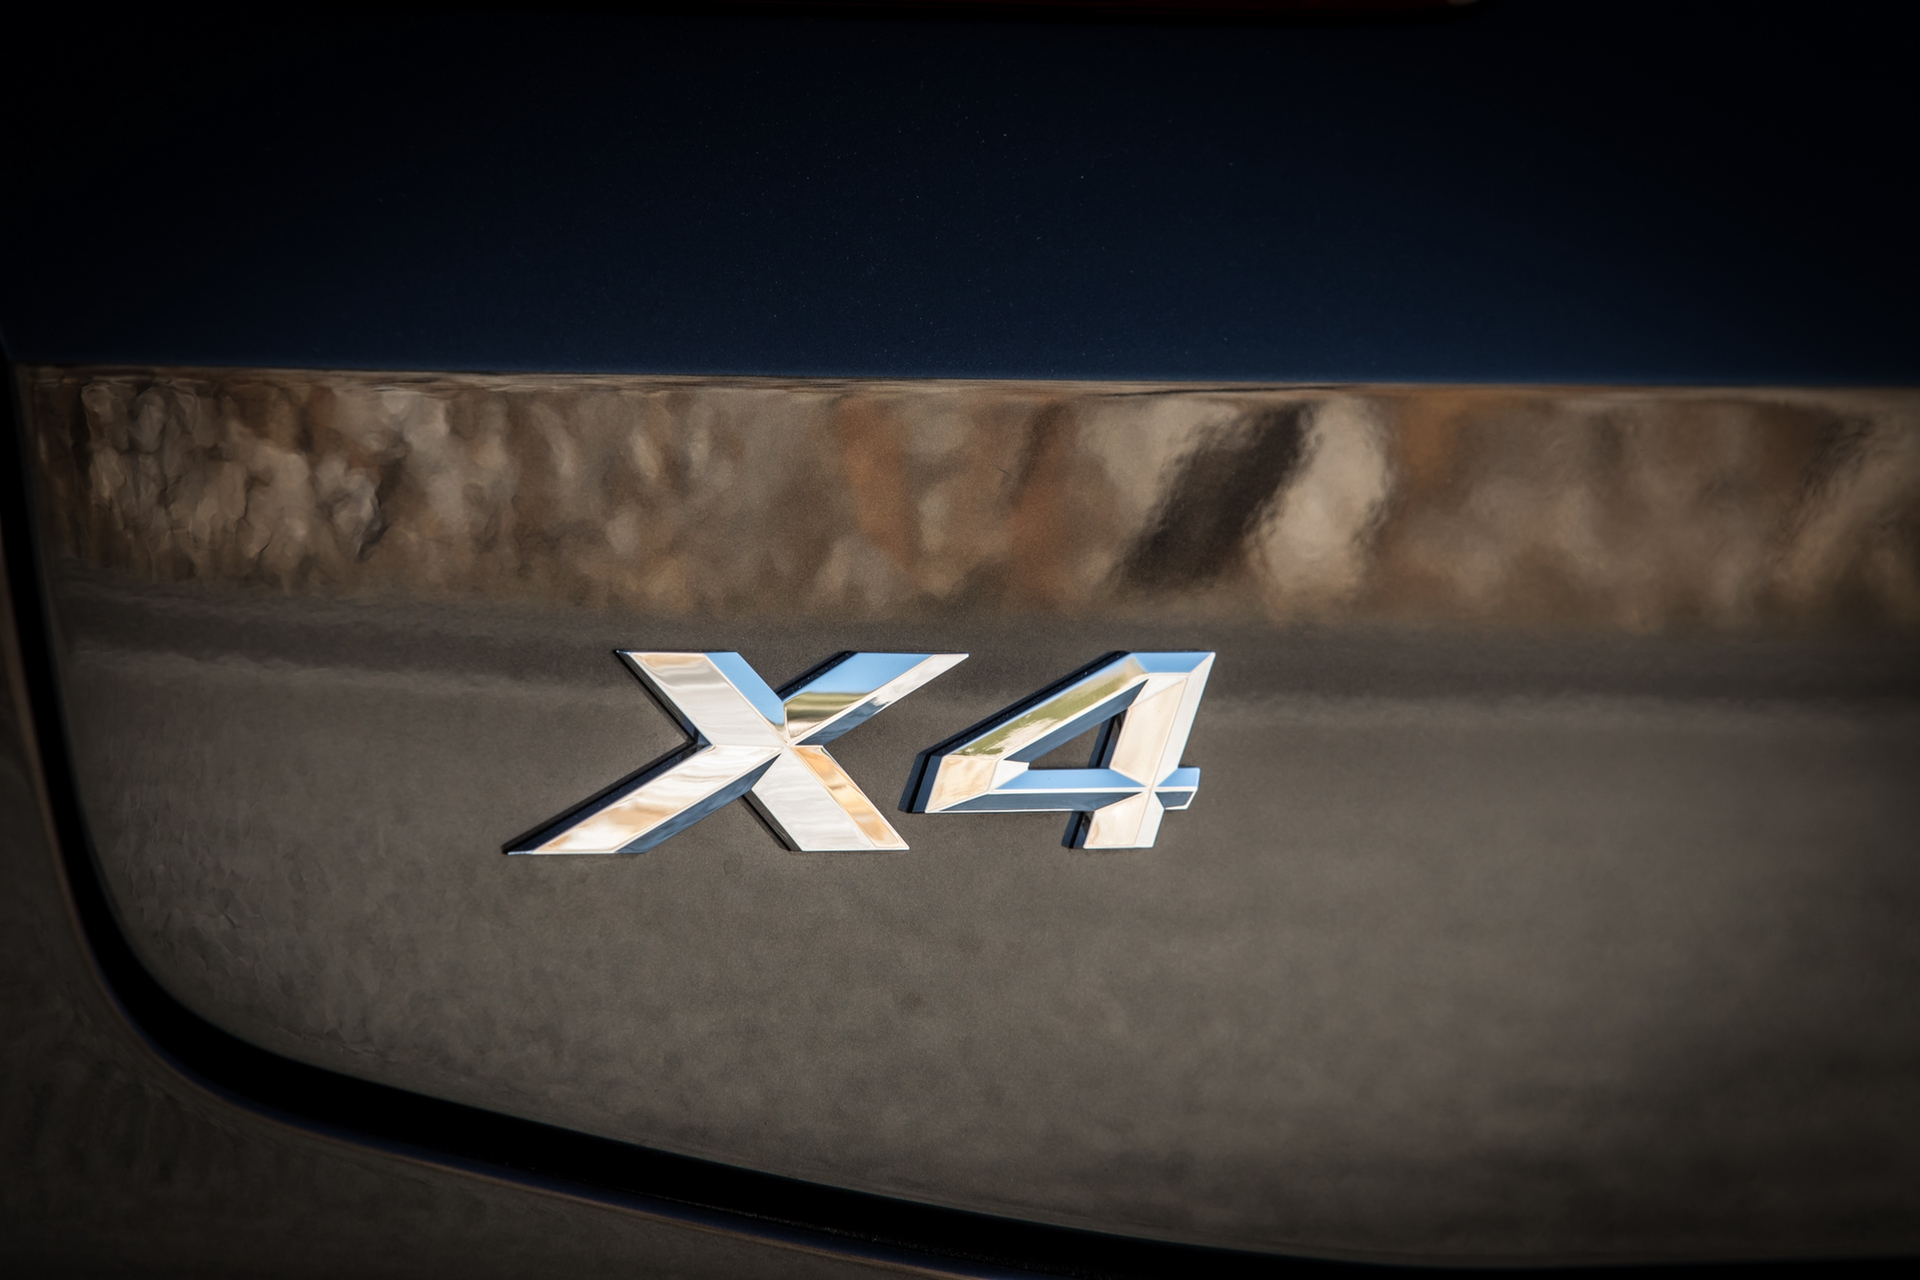 BMW_X4_greek_presskit_0115